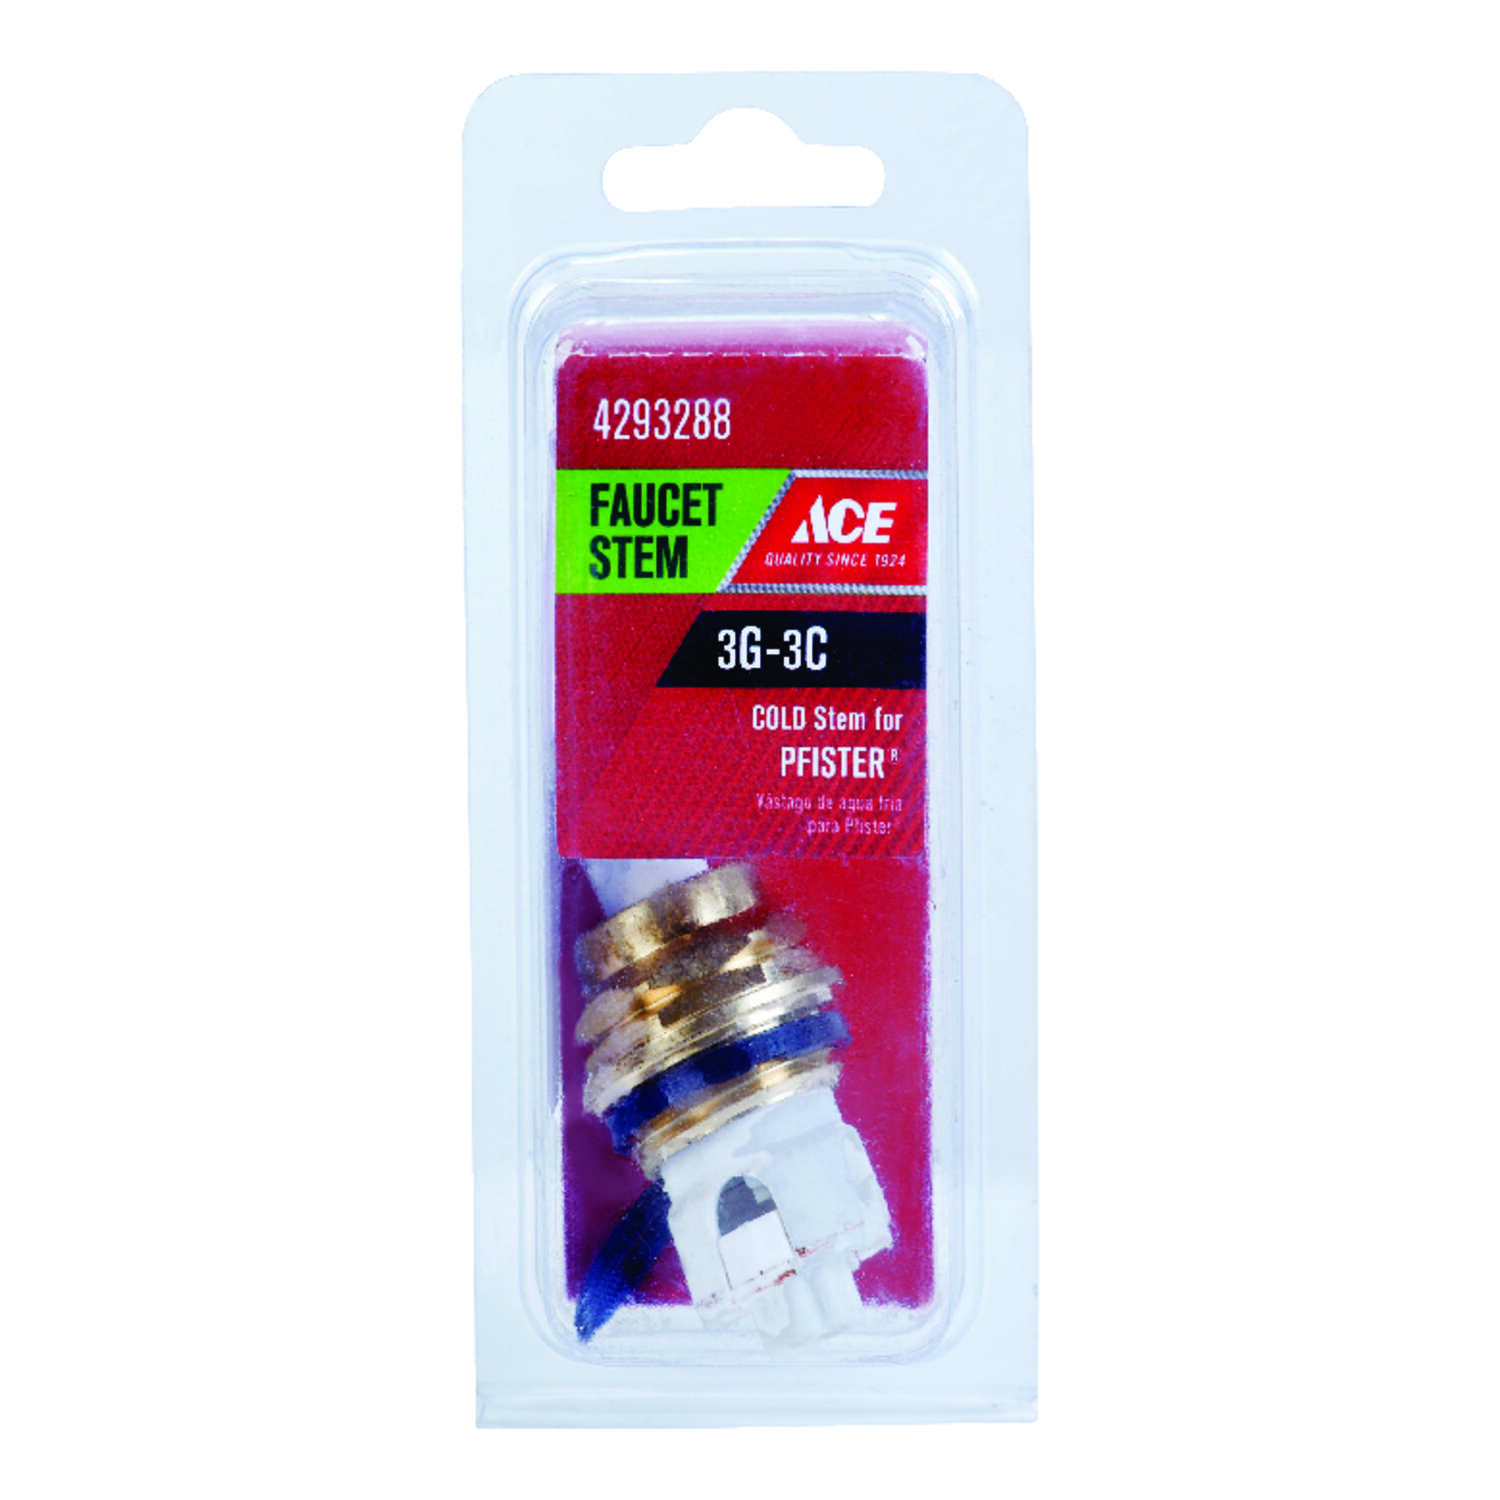 Ace  3G-3C  Cold  Faucet Stem  For Pfister